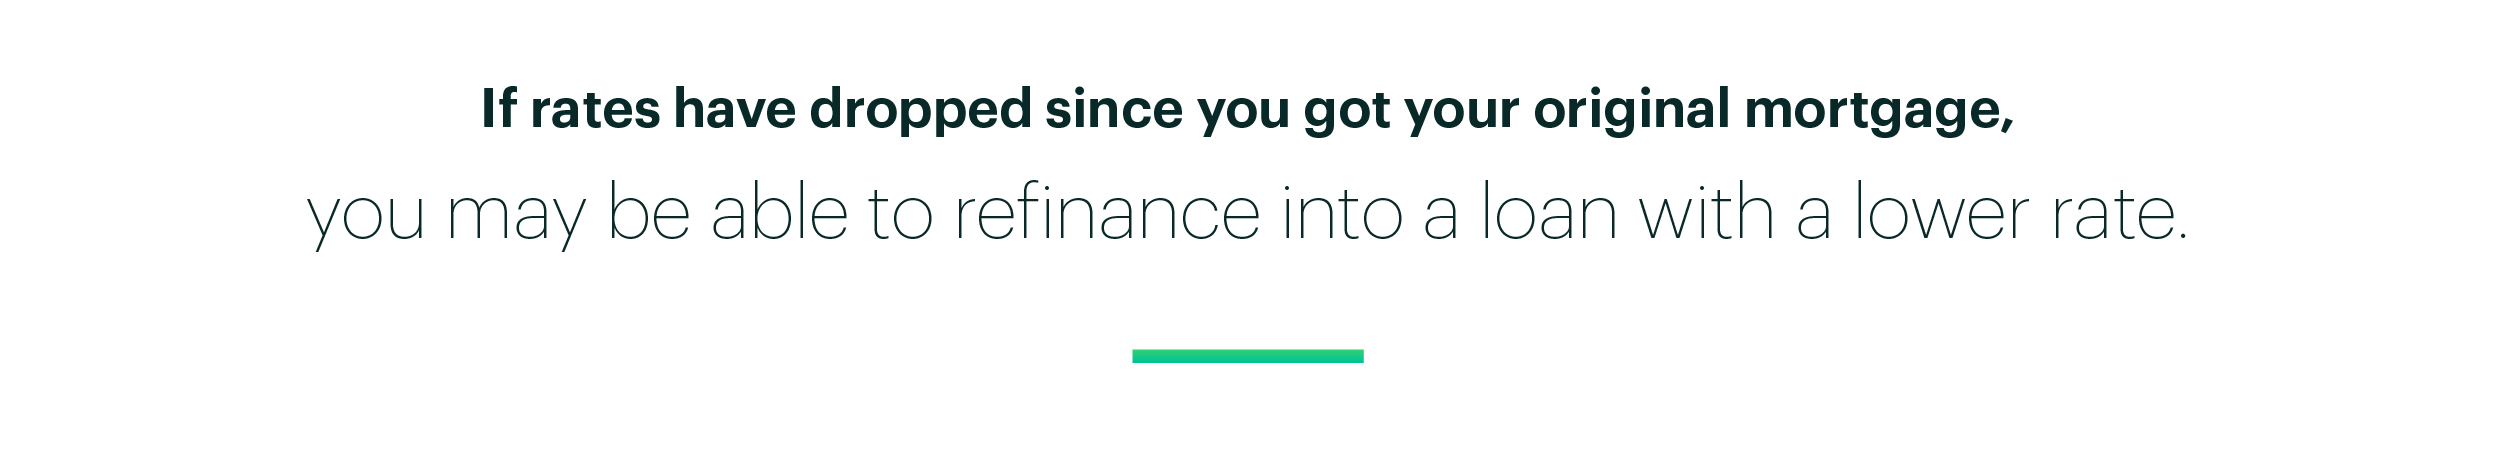 Quote Image: If Rates Have Dropped Since Your Mortgage. You May Be Able to Refinance into a Loan with a Lower Rate